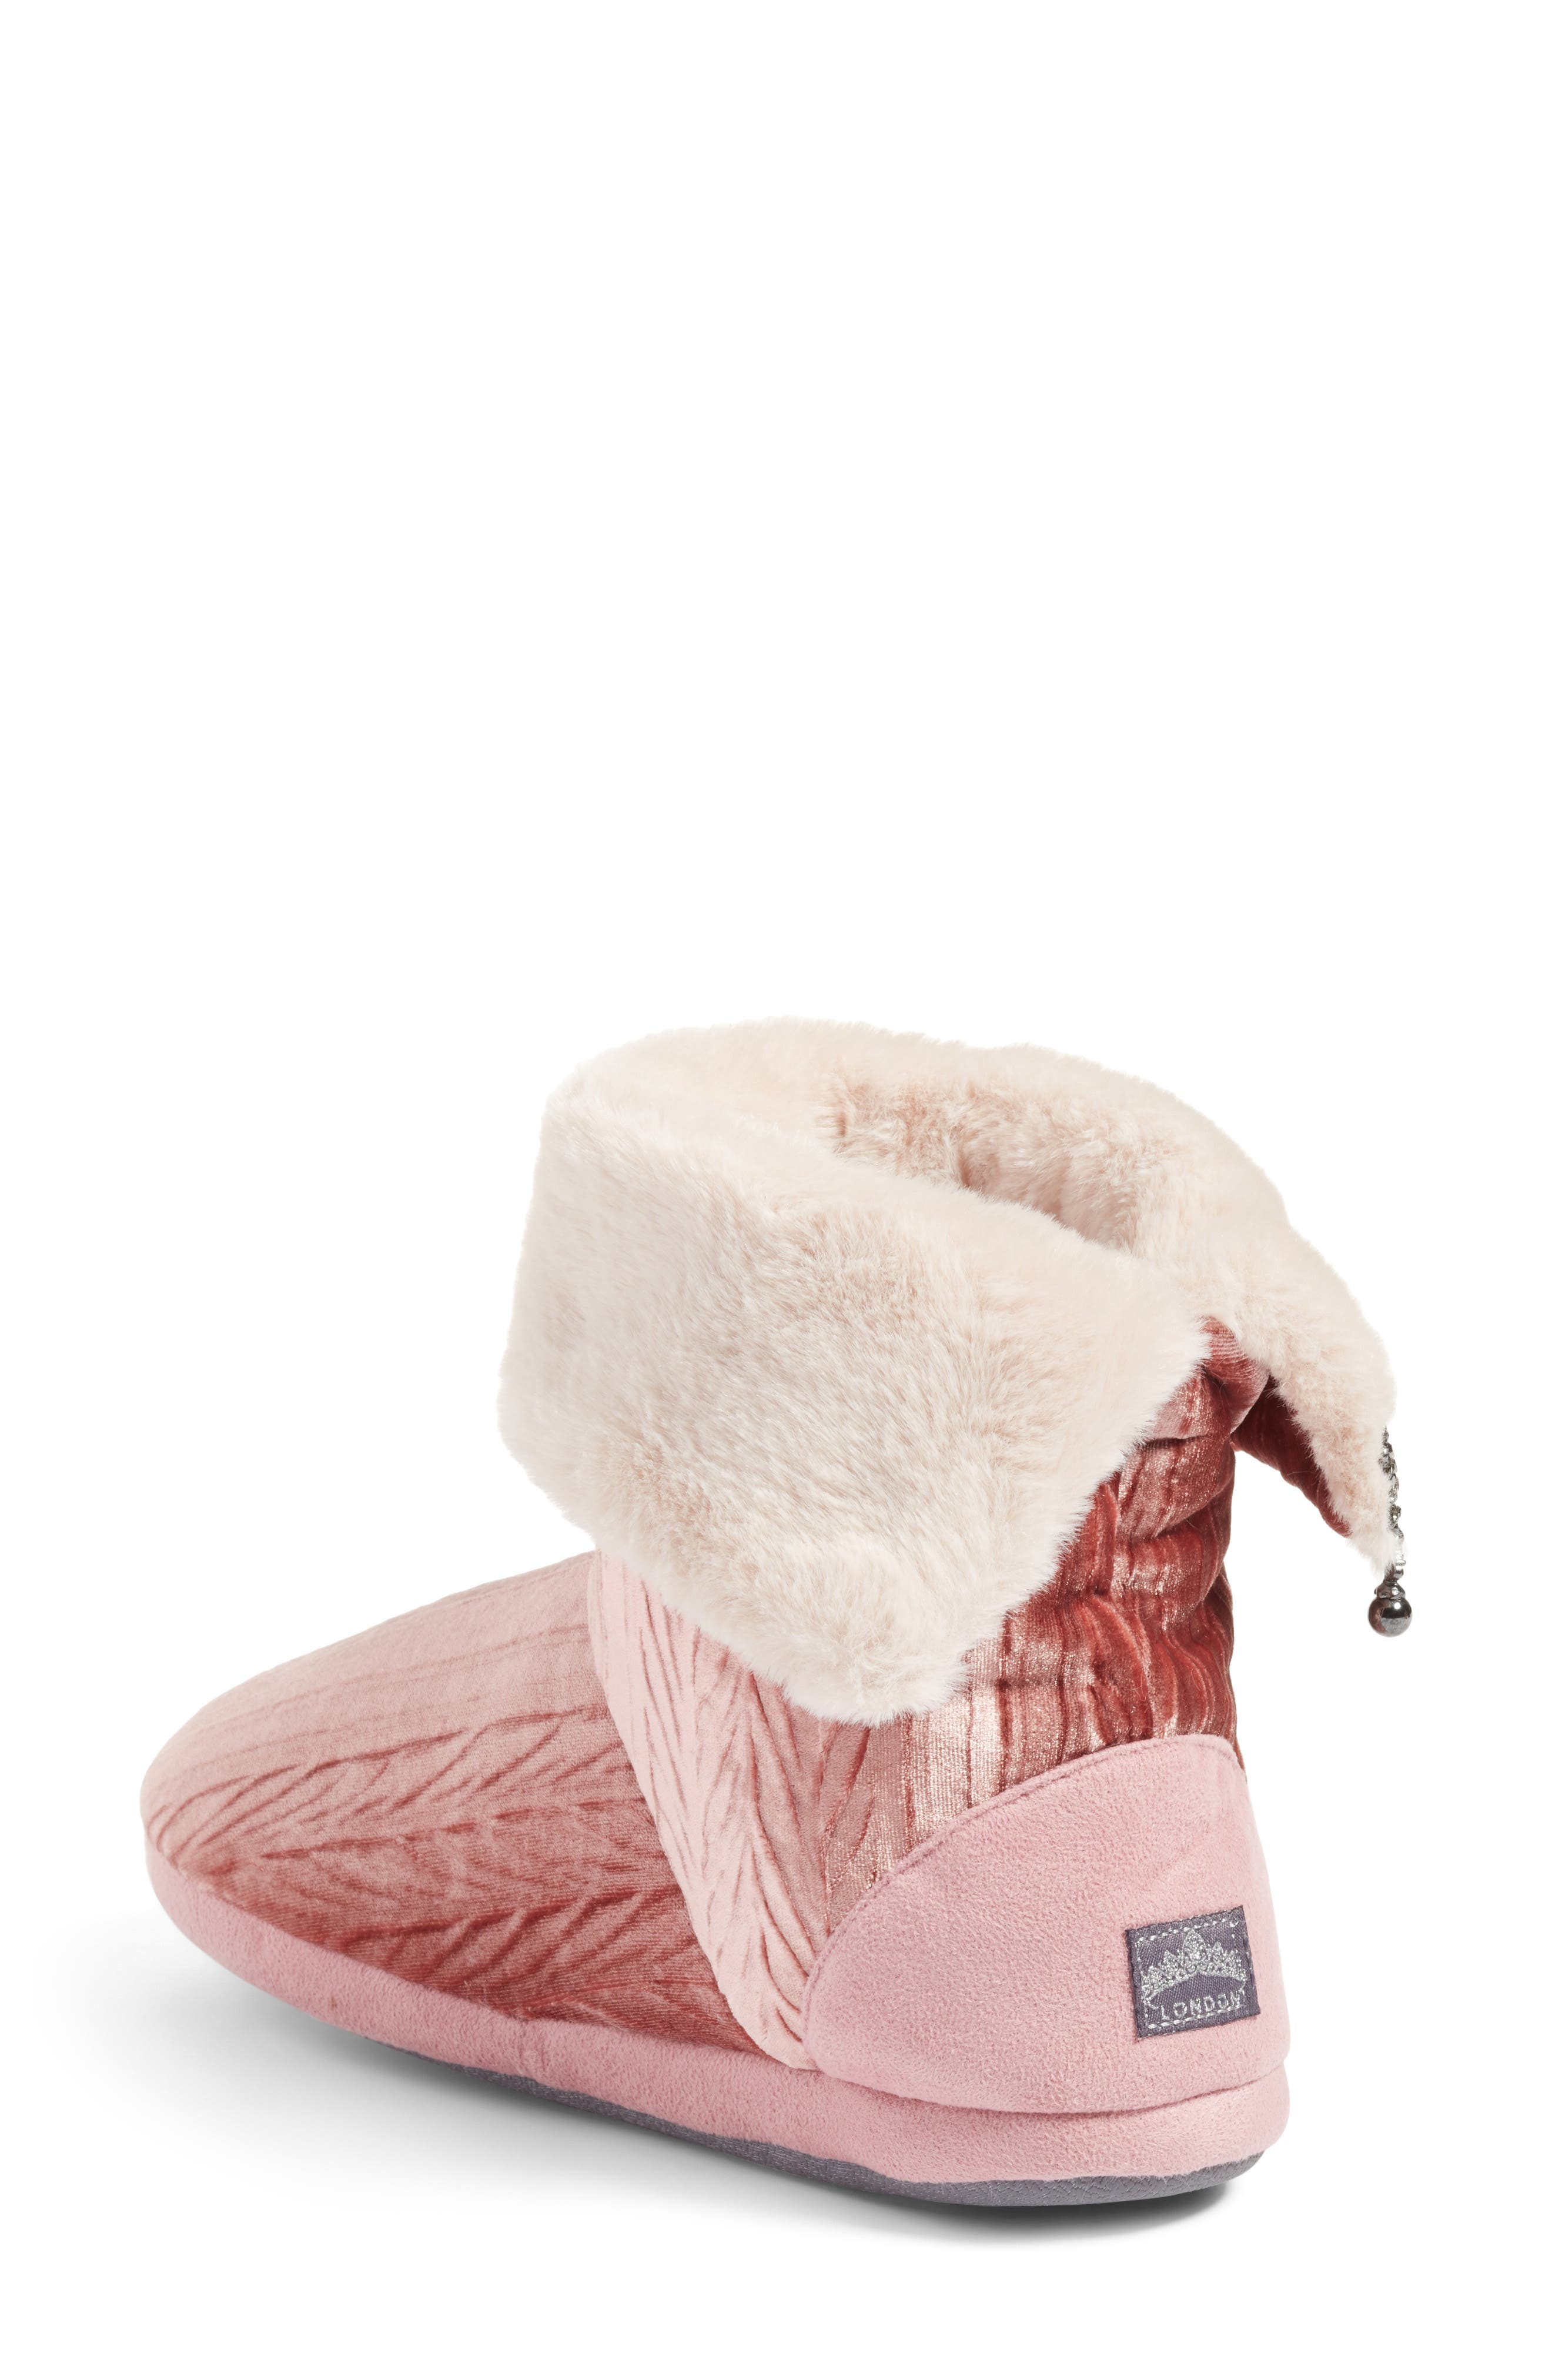 Velvet Bootie Slipper,                             Alternate thumbnail 3, color,                             Pink